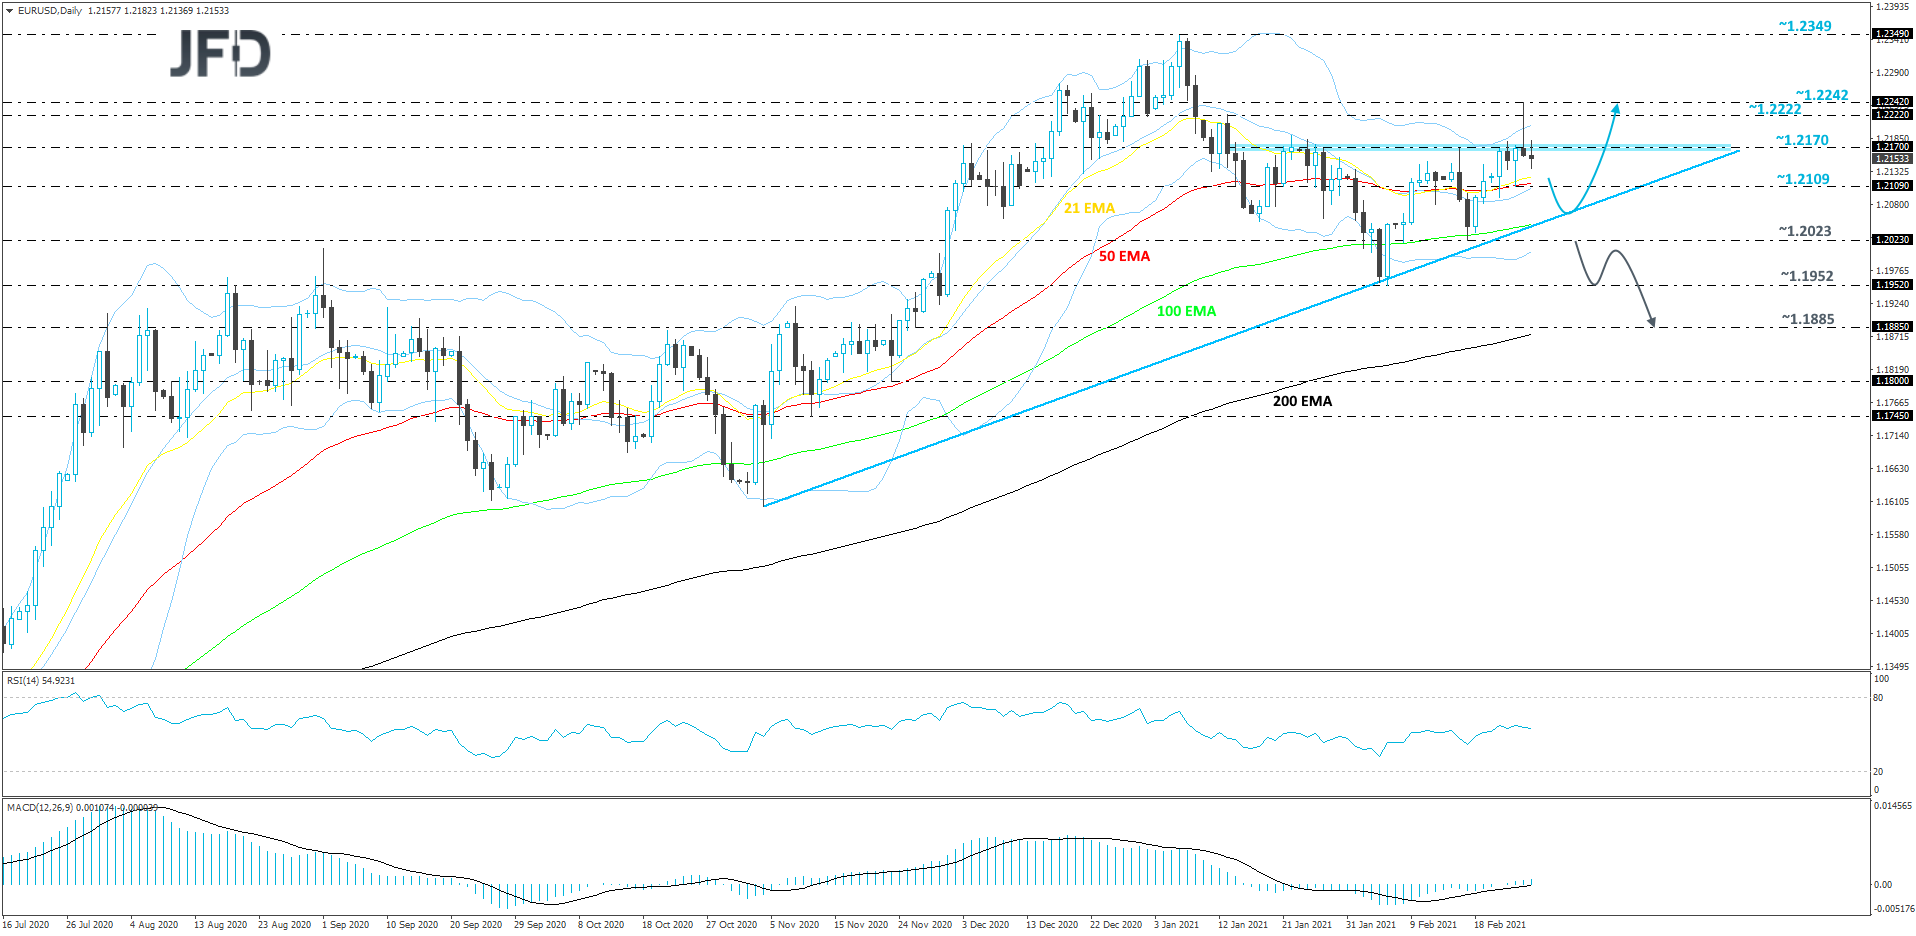 EUR/USD daily chart technical analysis